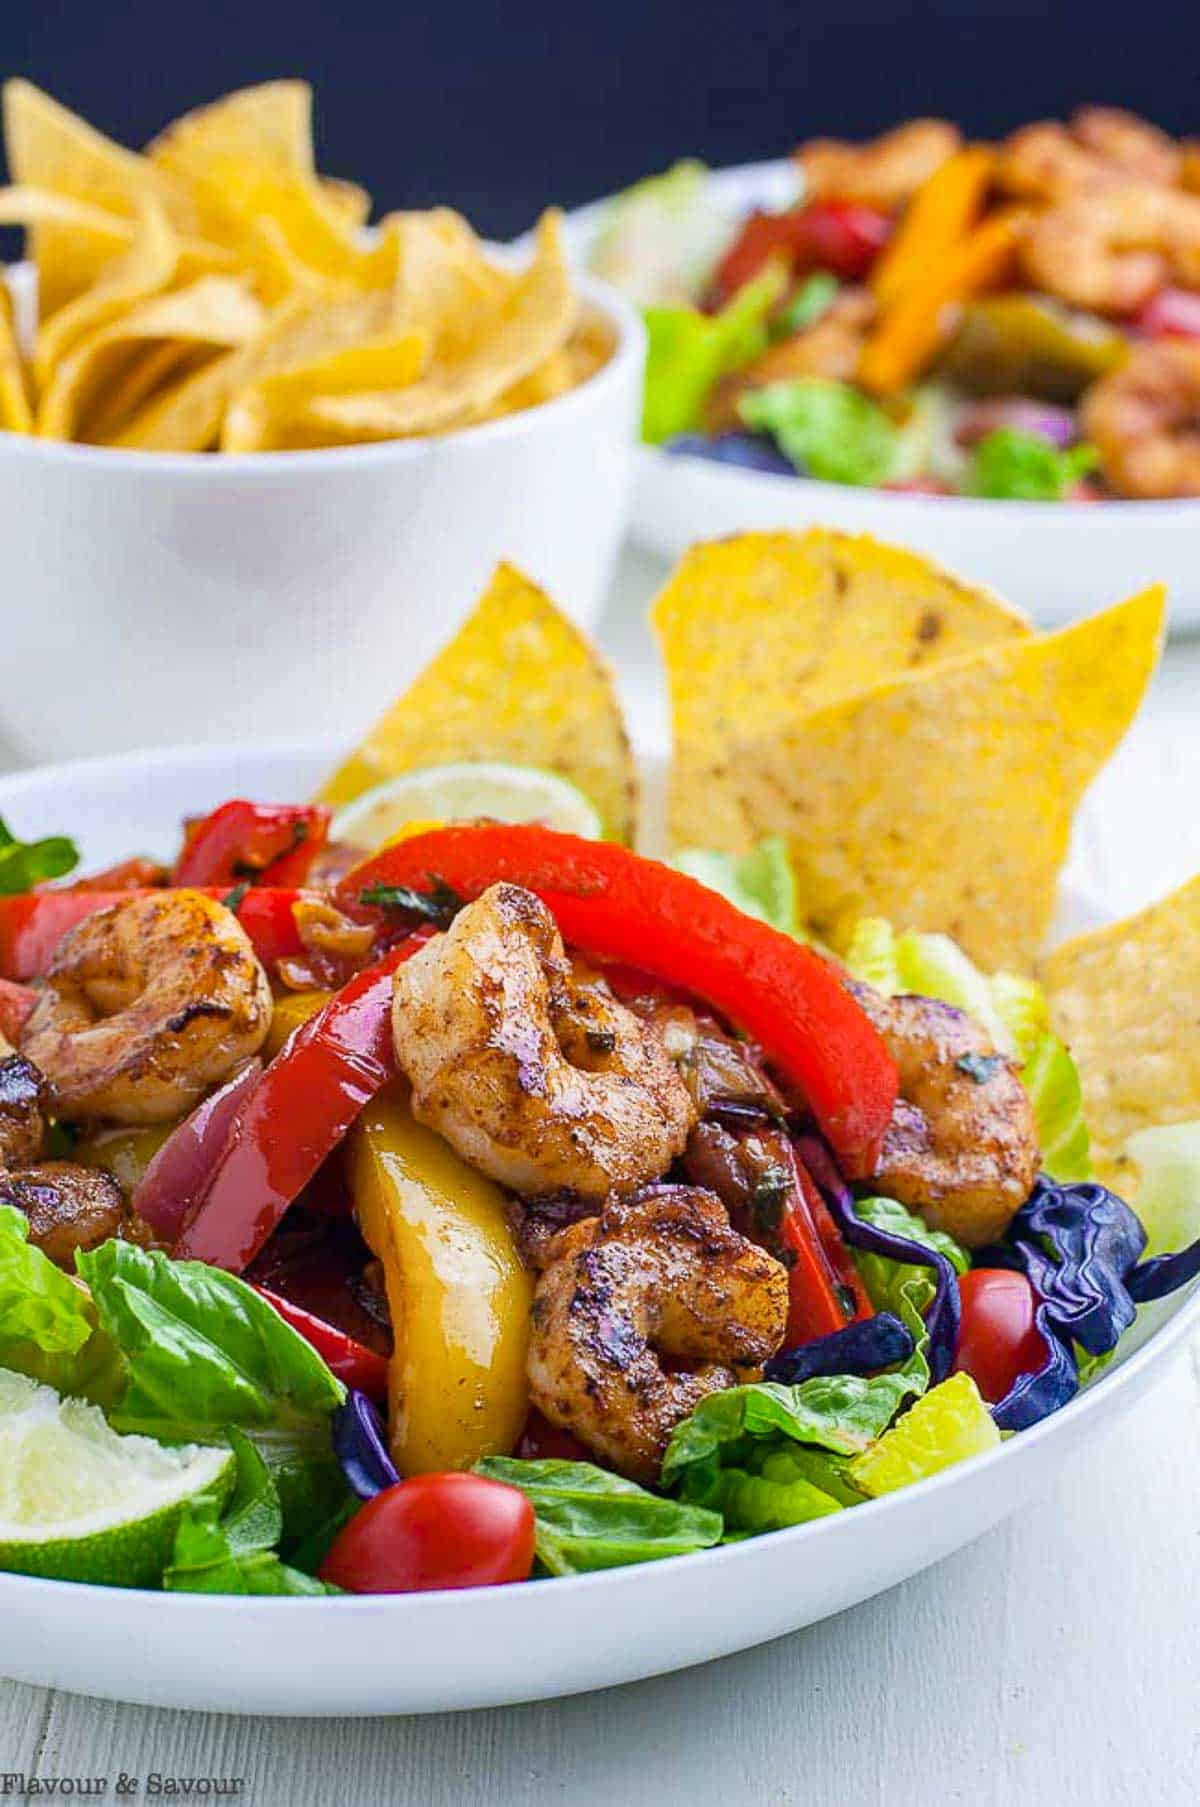 Close up view of Shrimp Fajita Salad with peppers and tortilla chips